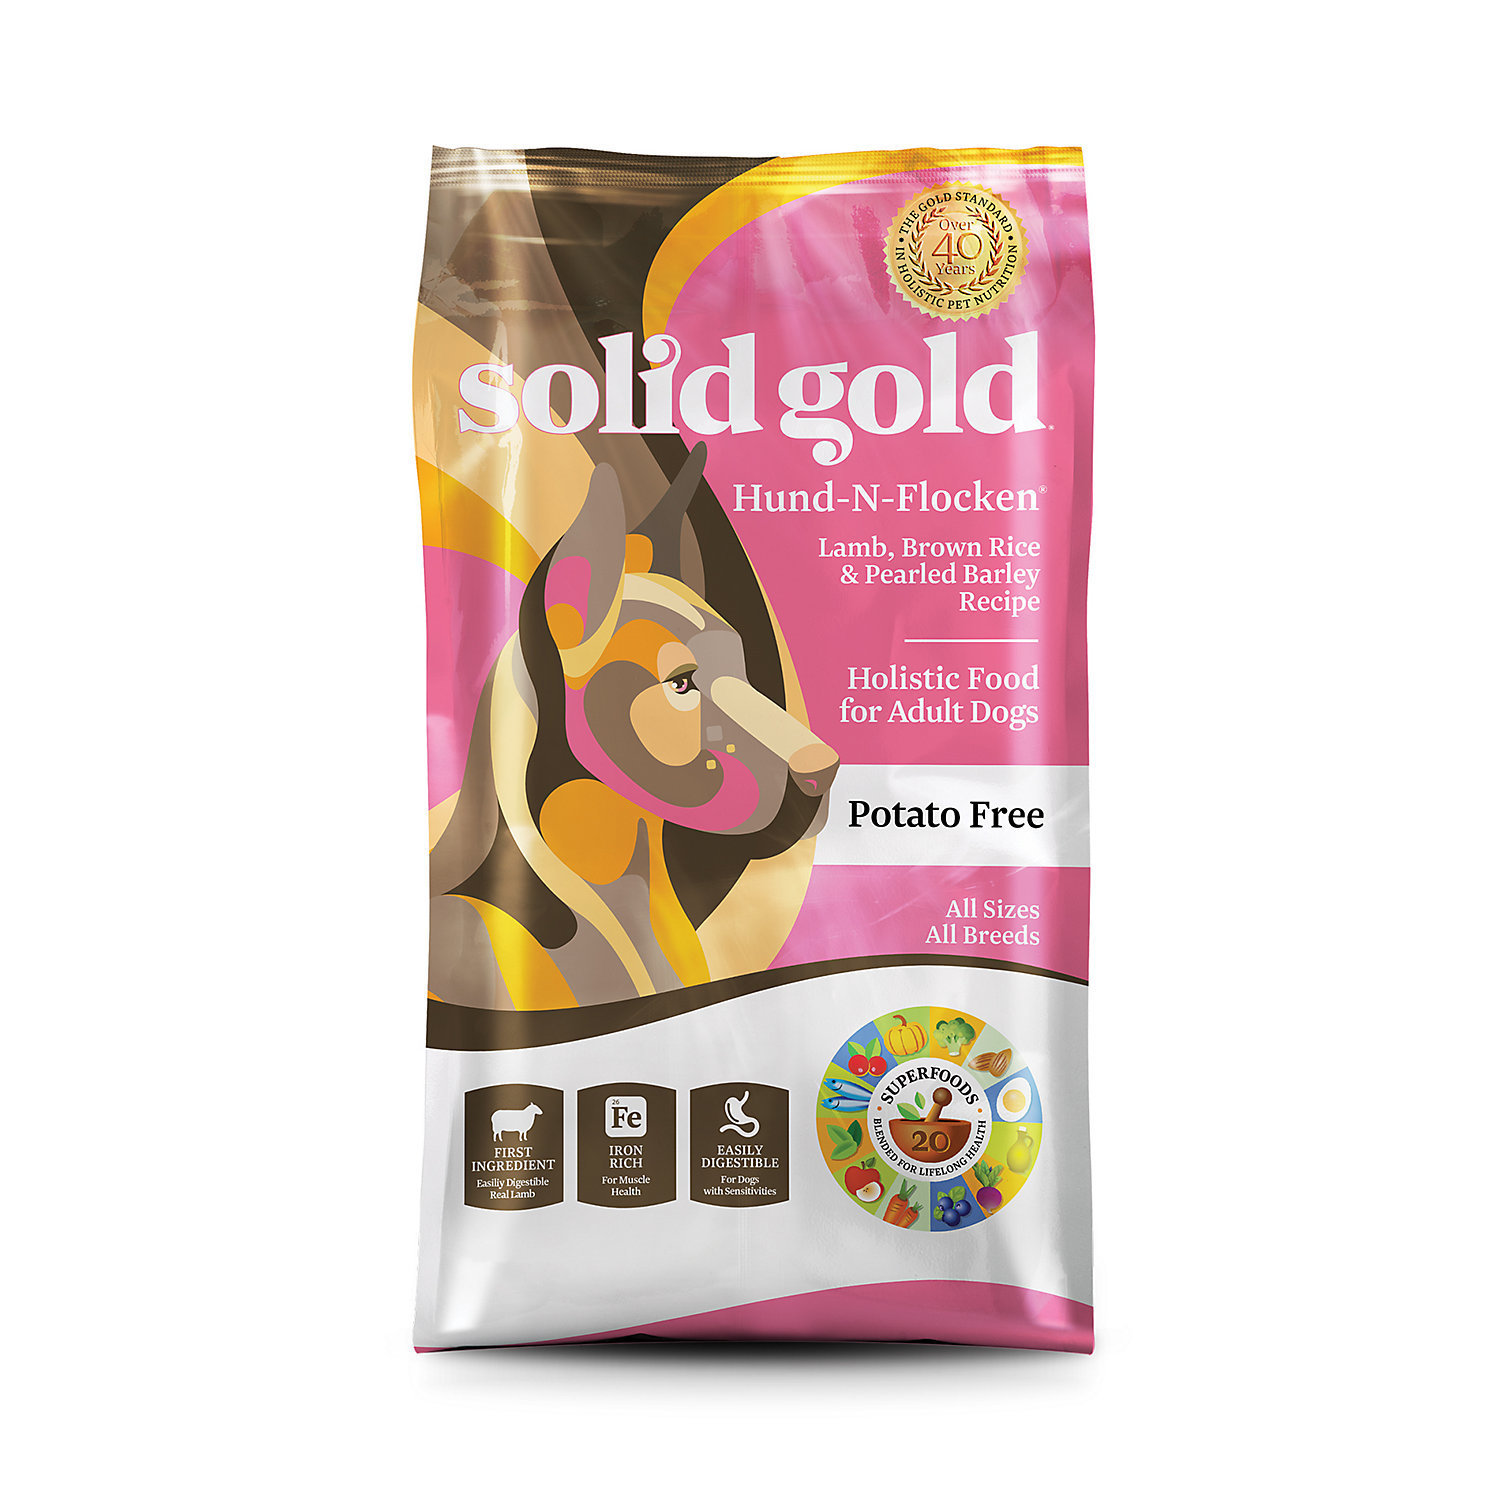 Solid Gold Hund-N-Flocken Lamb, Brown Rice & Pearled Barley Adult Dog Food, 28.5 lbs. (A.J2)